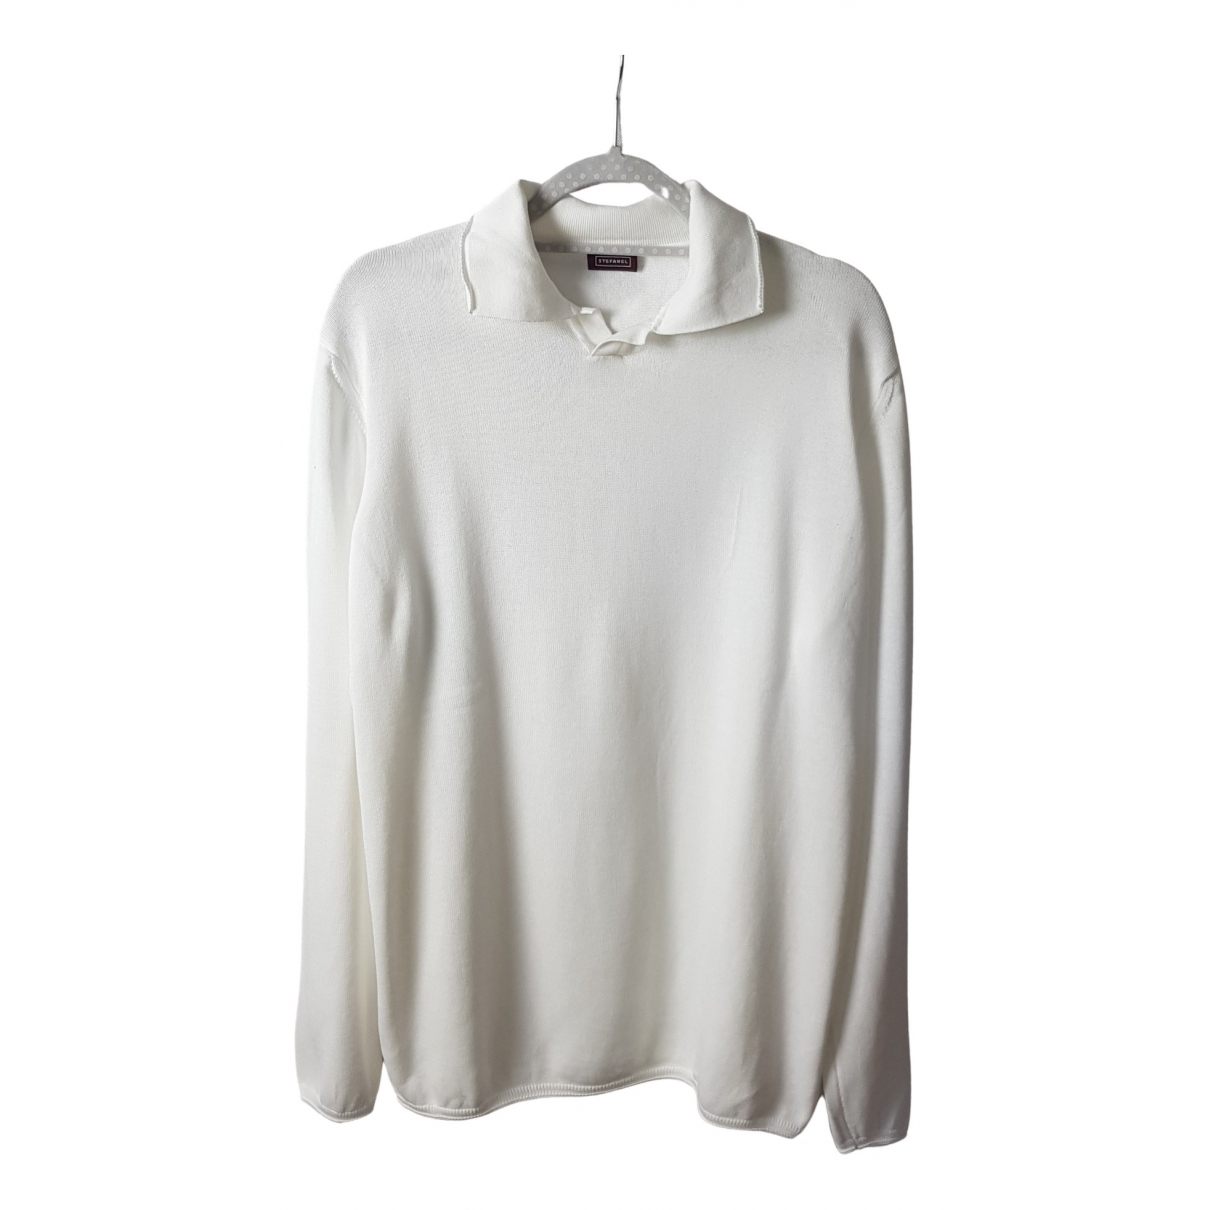 Stefanel \N White Cotton Knitwear & Sweatshirts for Men L International